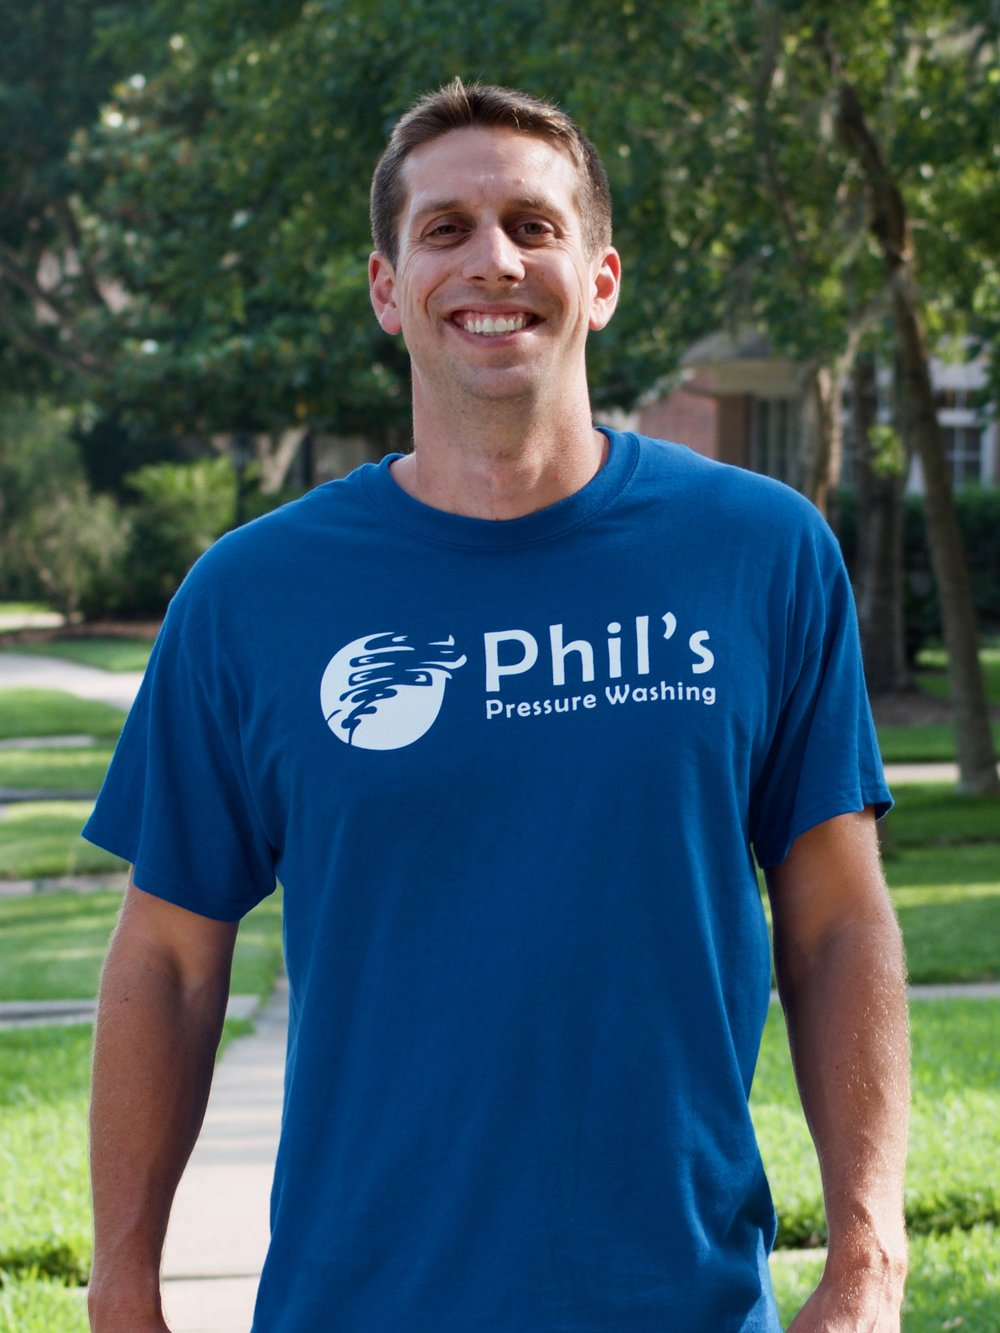 Phil - Owner - Phil graduated from Texas A&M University in 2008, and founded Phil's Pressure Washing shortly thereafter. When he's not working, he enjoys playing basketball and walking his dog Zena.